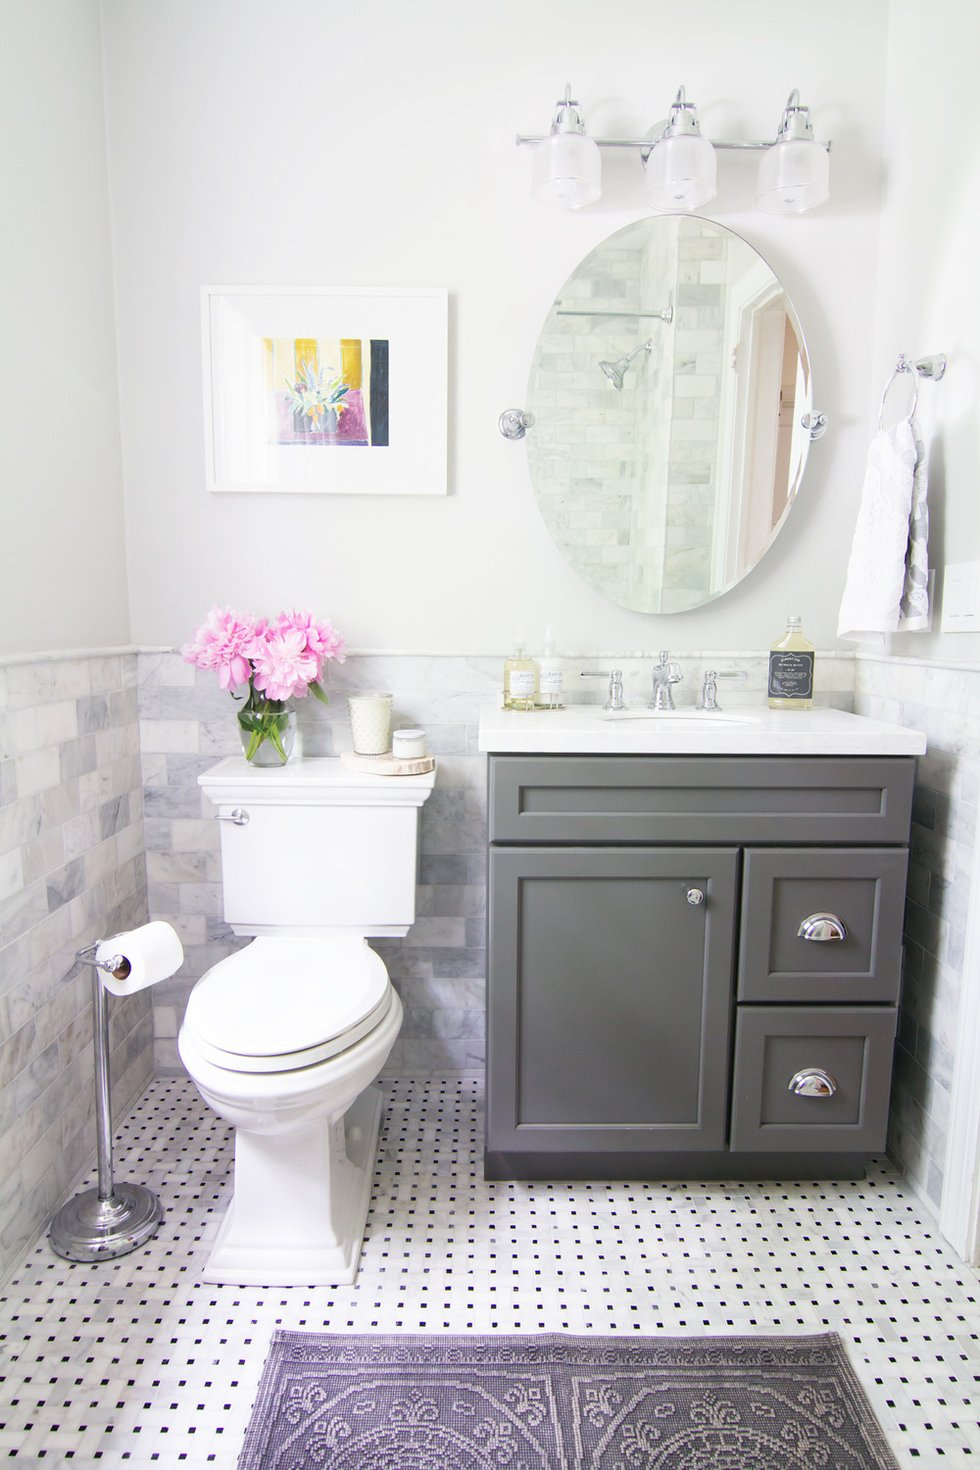 Modern and simple small bathroom ideas you can try at home Tiny bathroom